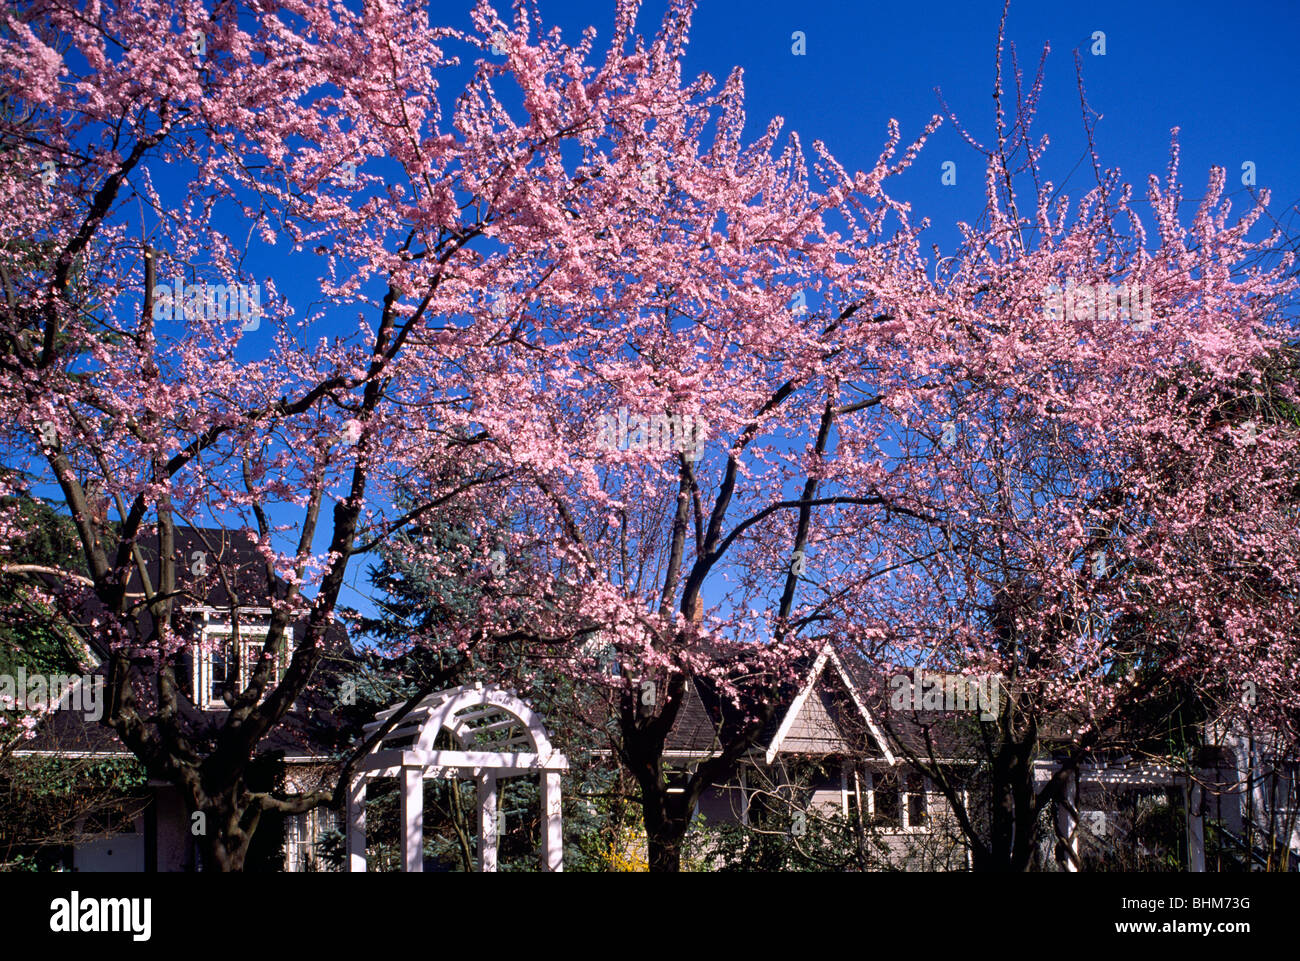 Cherry Blossom Blossoms On Japanese Cherry Trees Vancouver Bc British Columbia Canada Residential Street Scene Spring Stock Photo Alamy